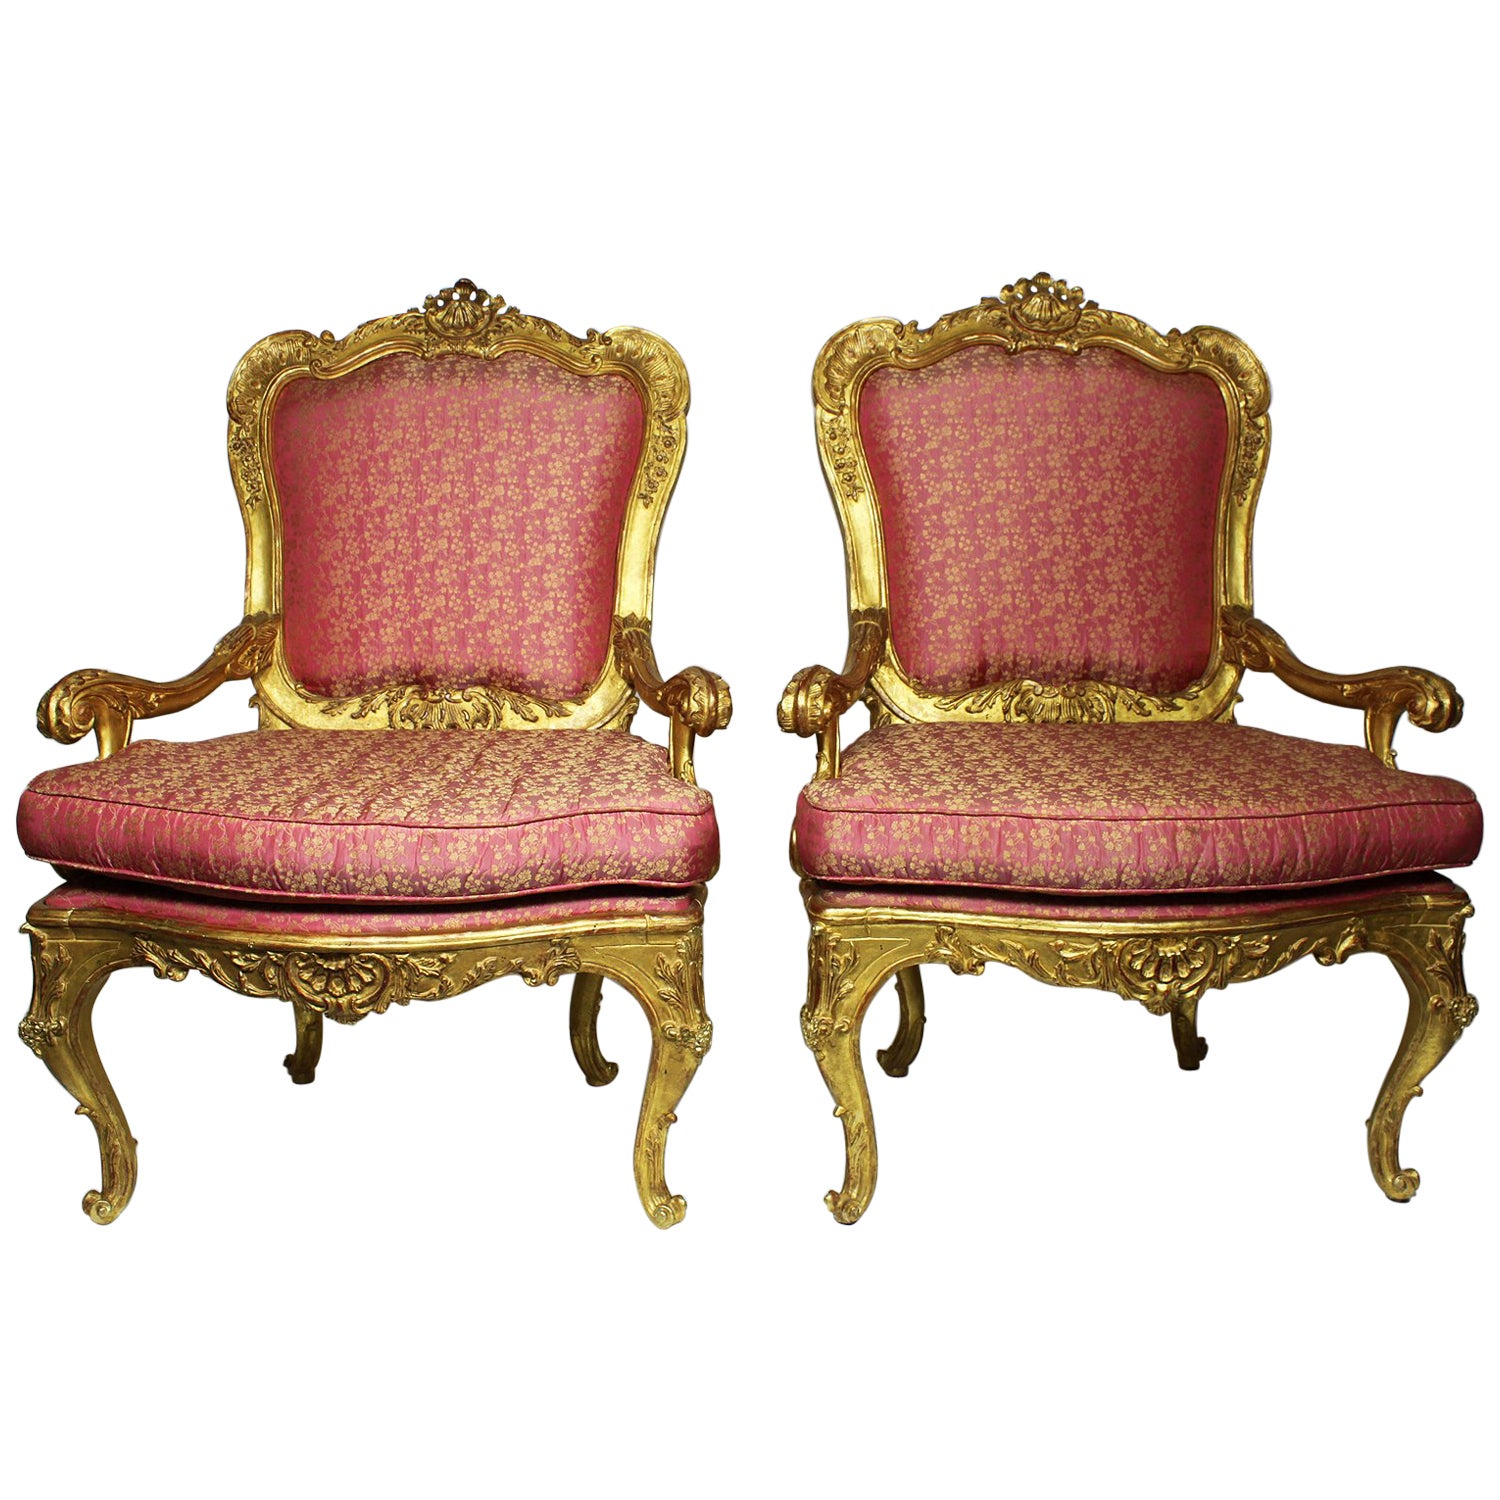 Pair of Italian Venetian Rococo Revival Style Giltwood Carved Throne Armchairs